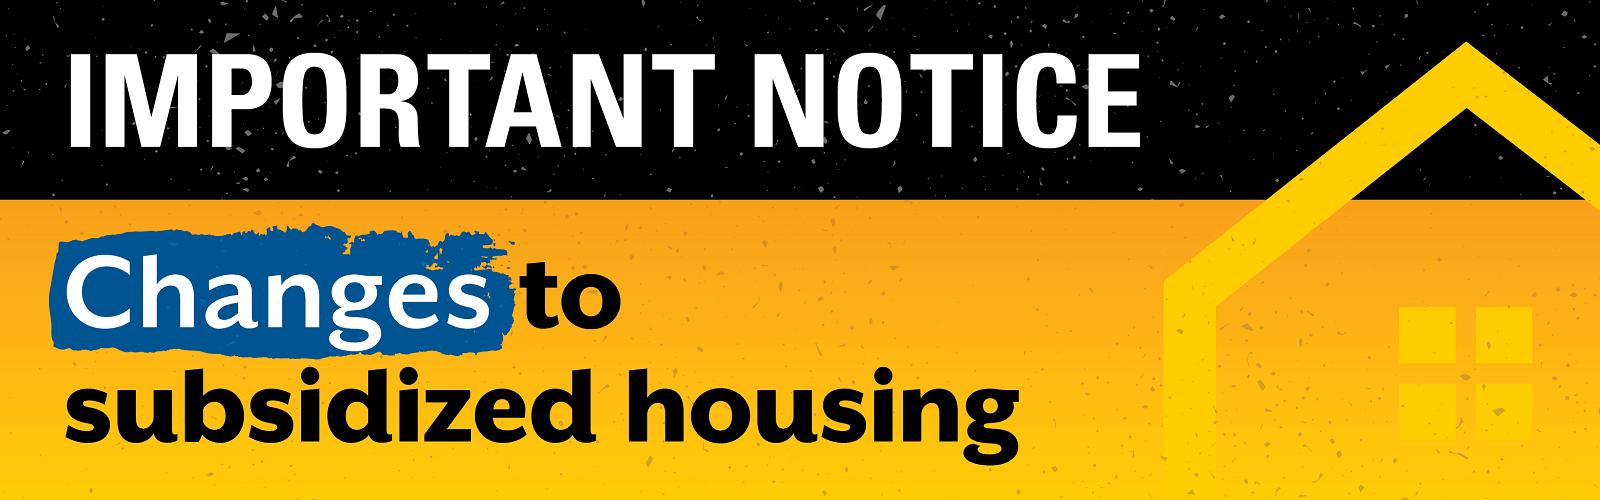 Graphic that says Important notice: changes to subsidized housing